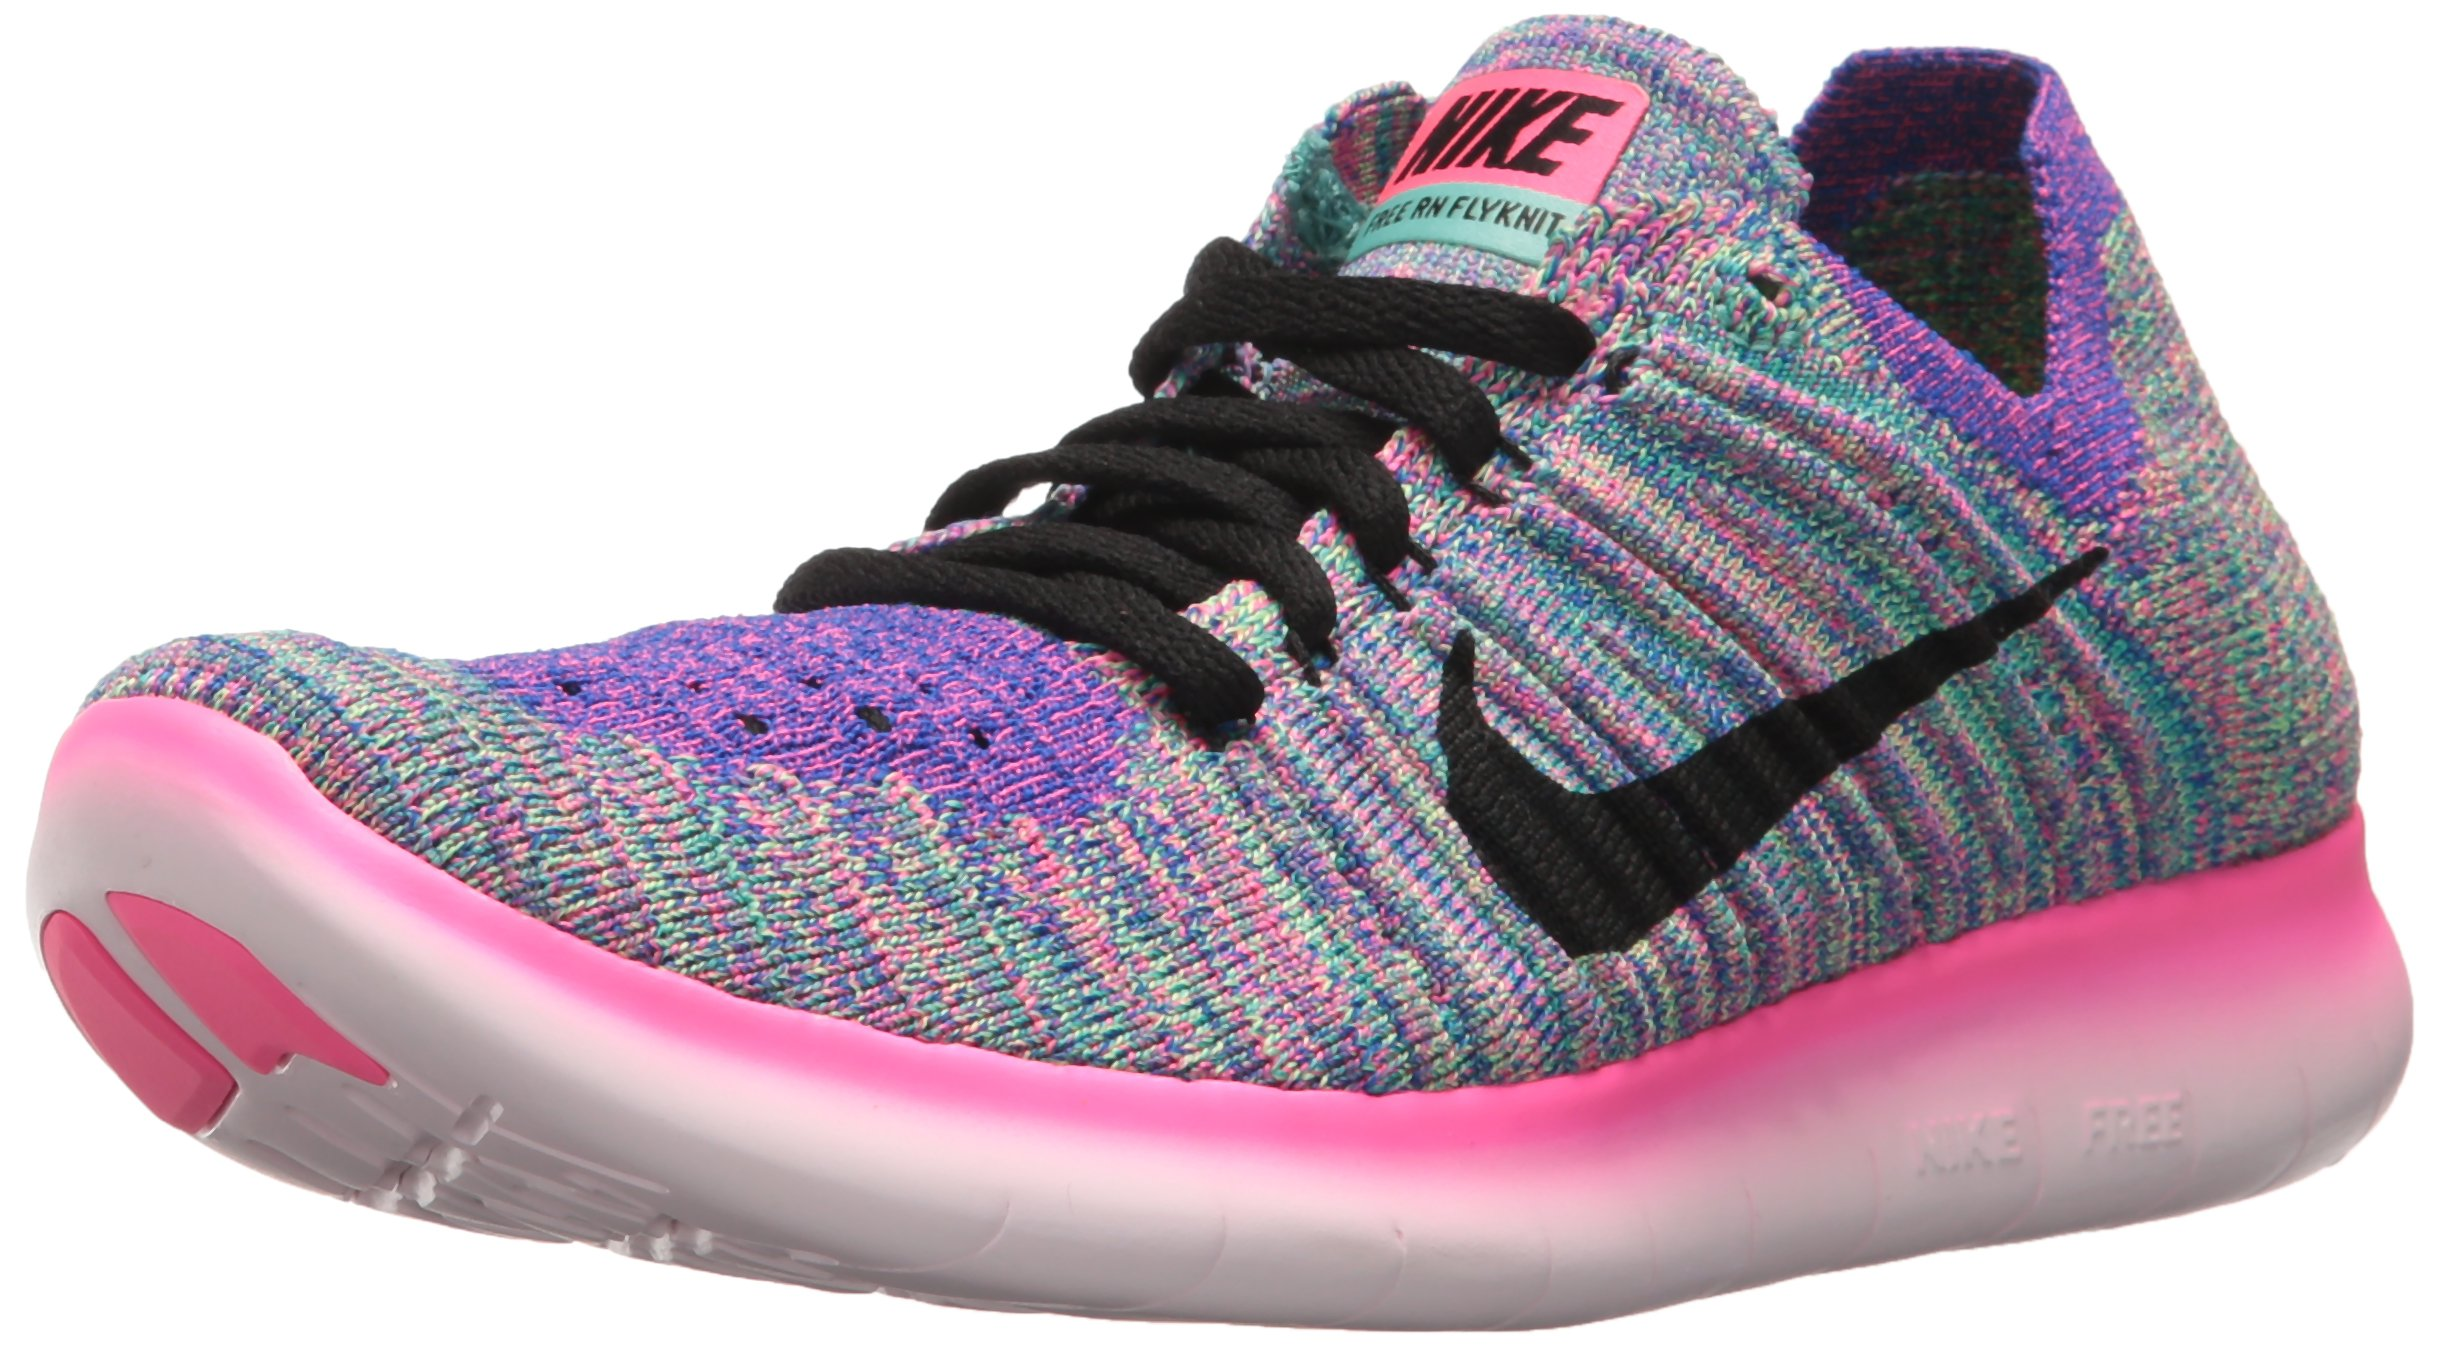 Nike Women's Free Running Motion Flyknit Shoes, Pink/Blue - 9 B(M) US by NIKE